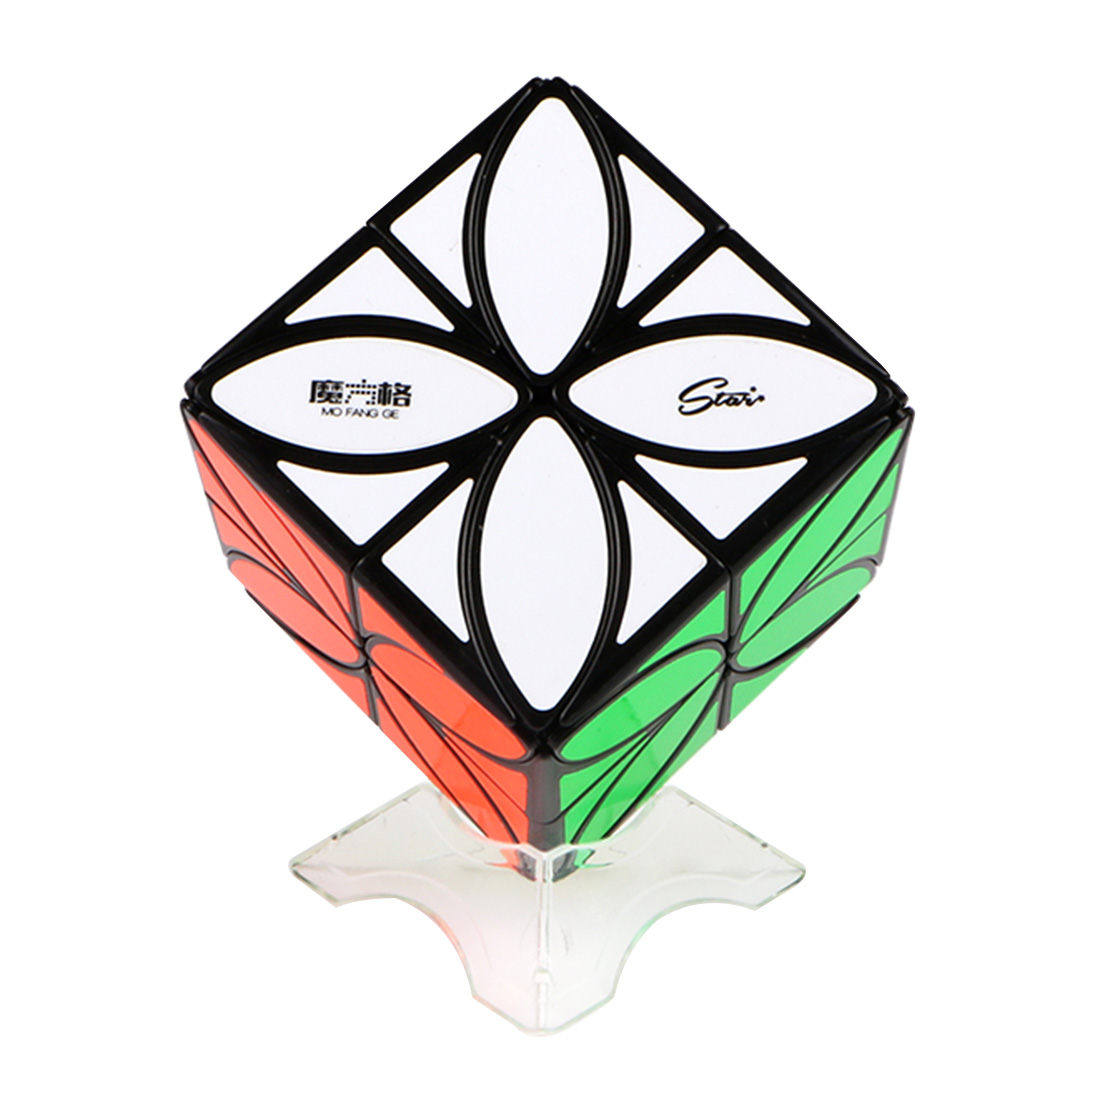 QiYi Mofangge Enhanced Version Four-leaf Clover Pattern Magic Cube Brain Teaser Puzzle Toys kinston four leaf clover pattern pu plastic case w stand for iphone 6 plus red silver